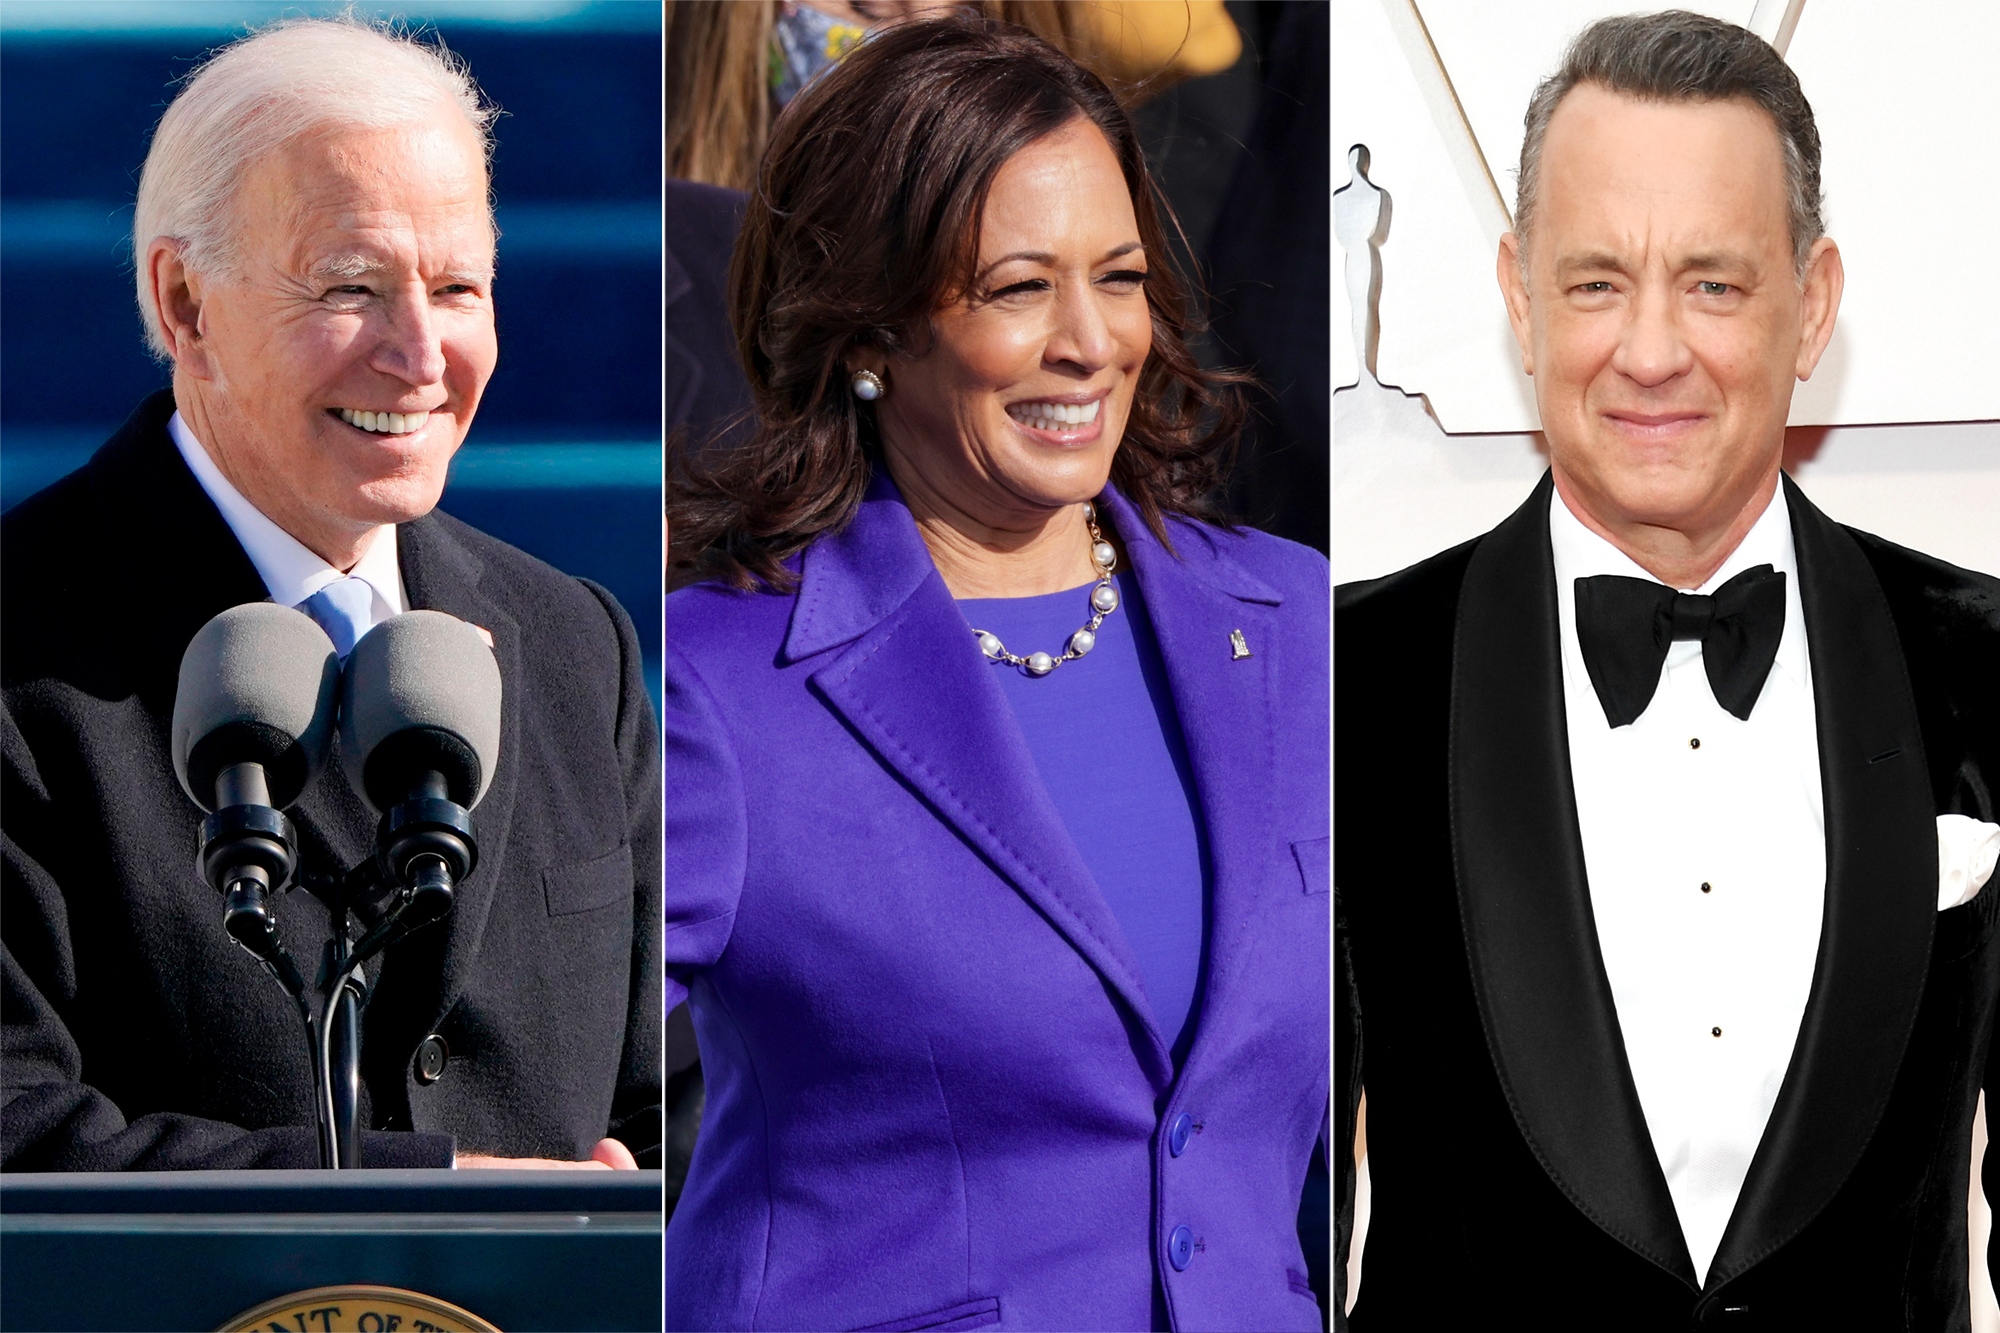 Joe Biden, Kamala Harris, Tom Hanks